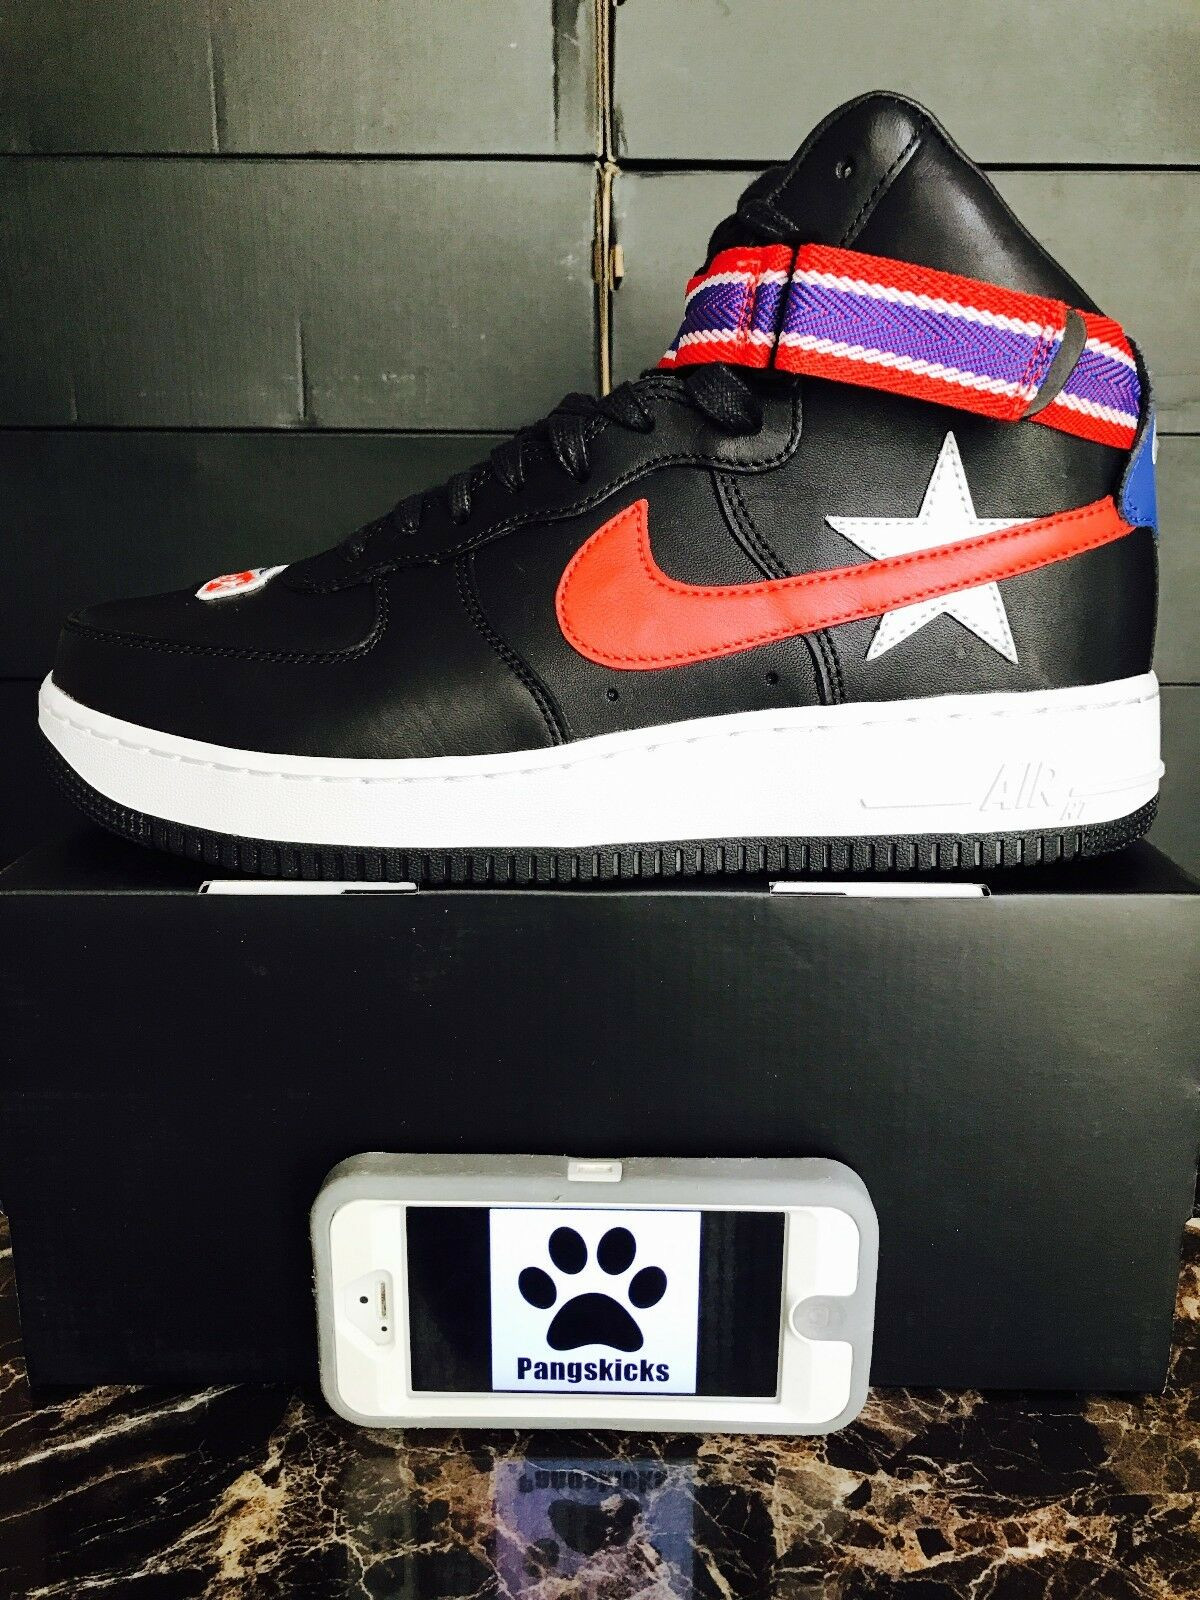 quality design 5f85f a5df7 Nike Air Force 1 High NikeLab x RT Riccardo Tisci Black AQ3366-001 Size 9.5-10  1 of 5Only 2 available ...